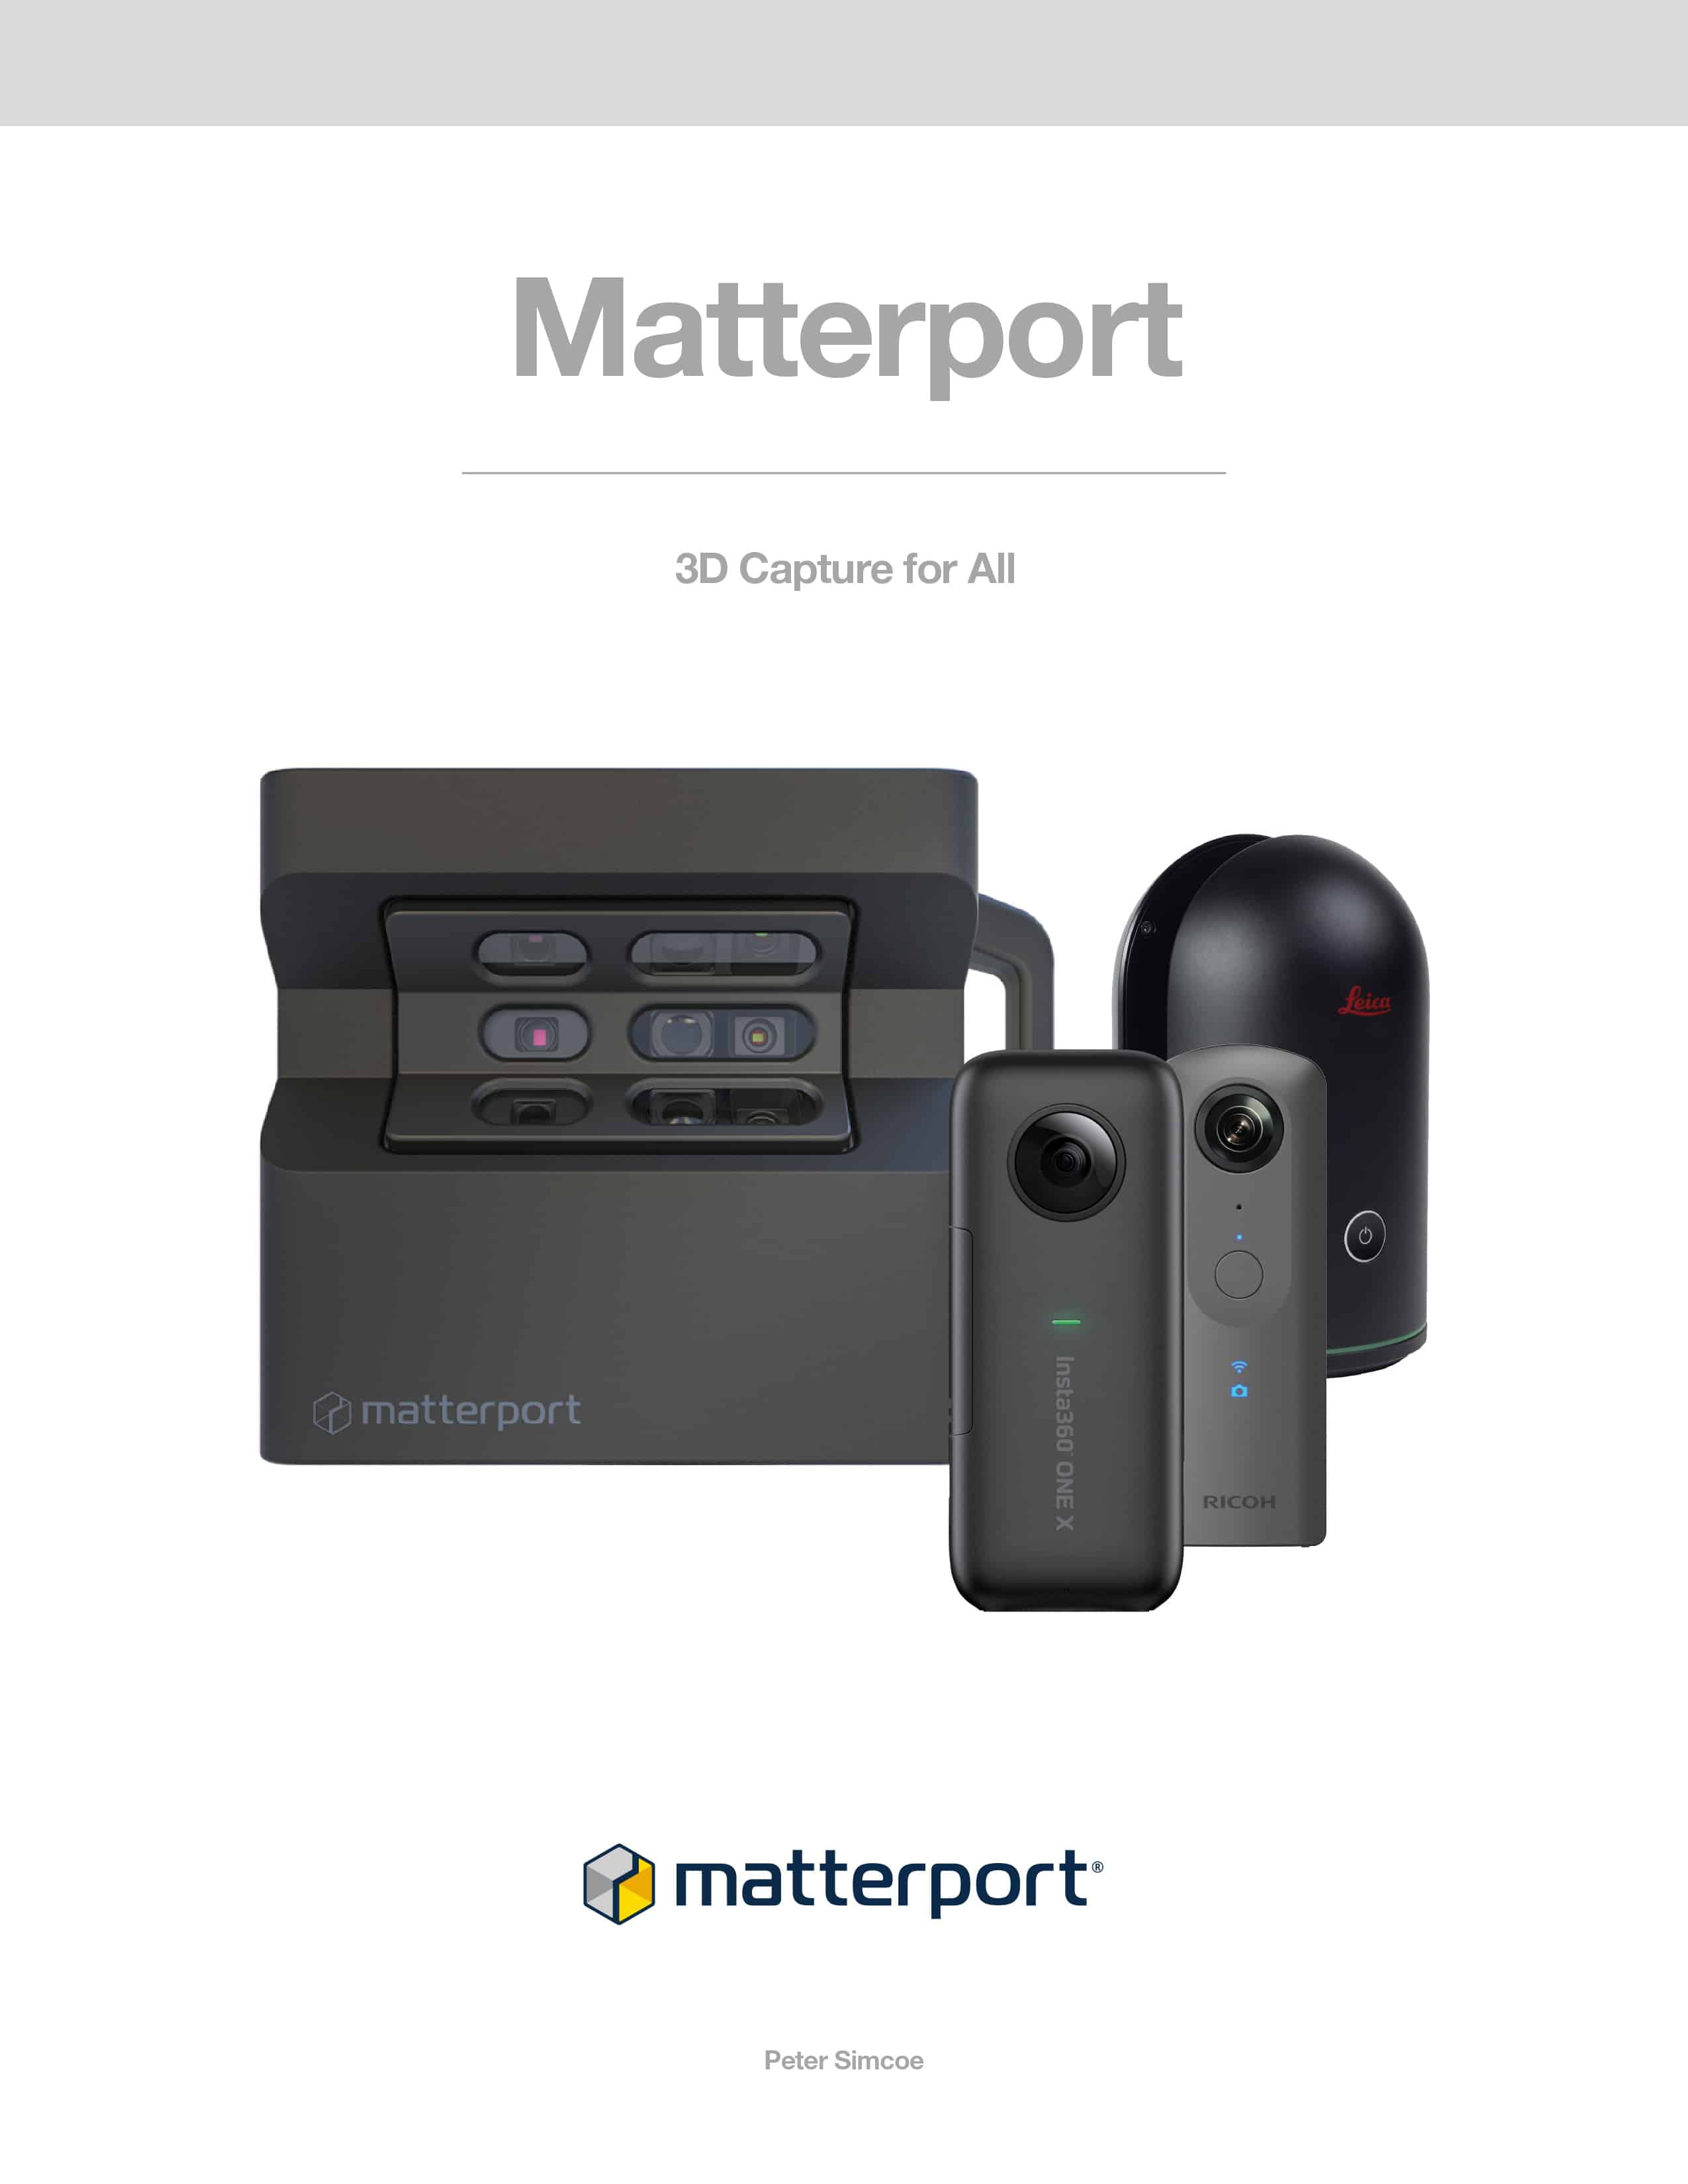 Matterport 3D Capture For All Book by Peter Simcoe